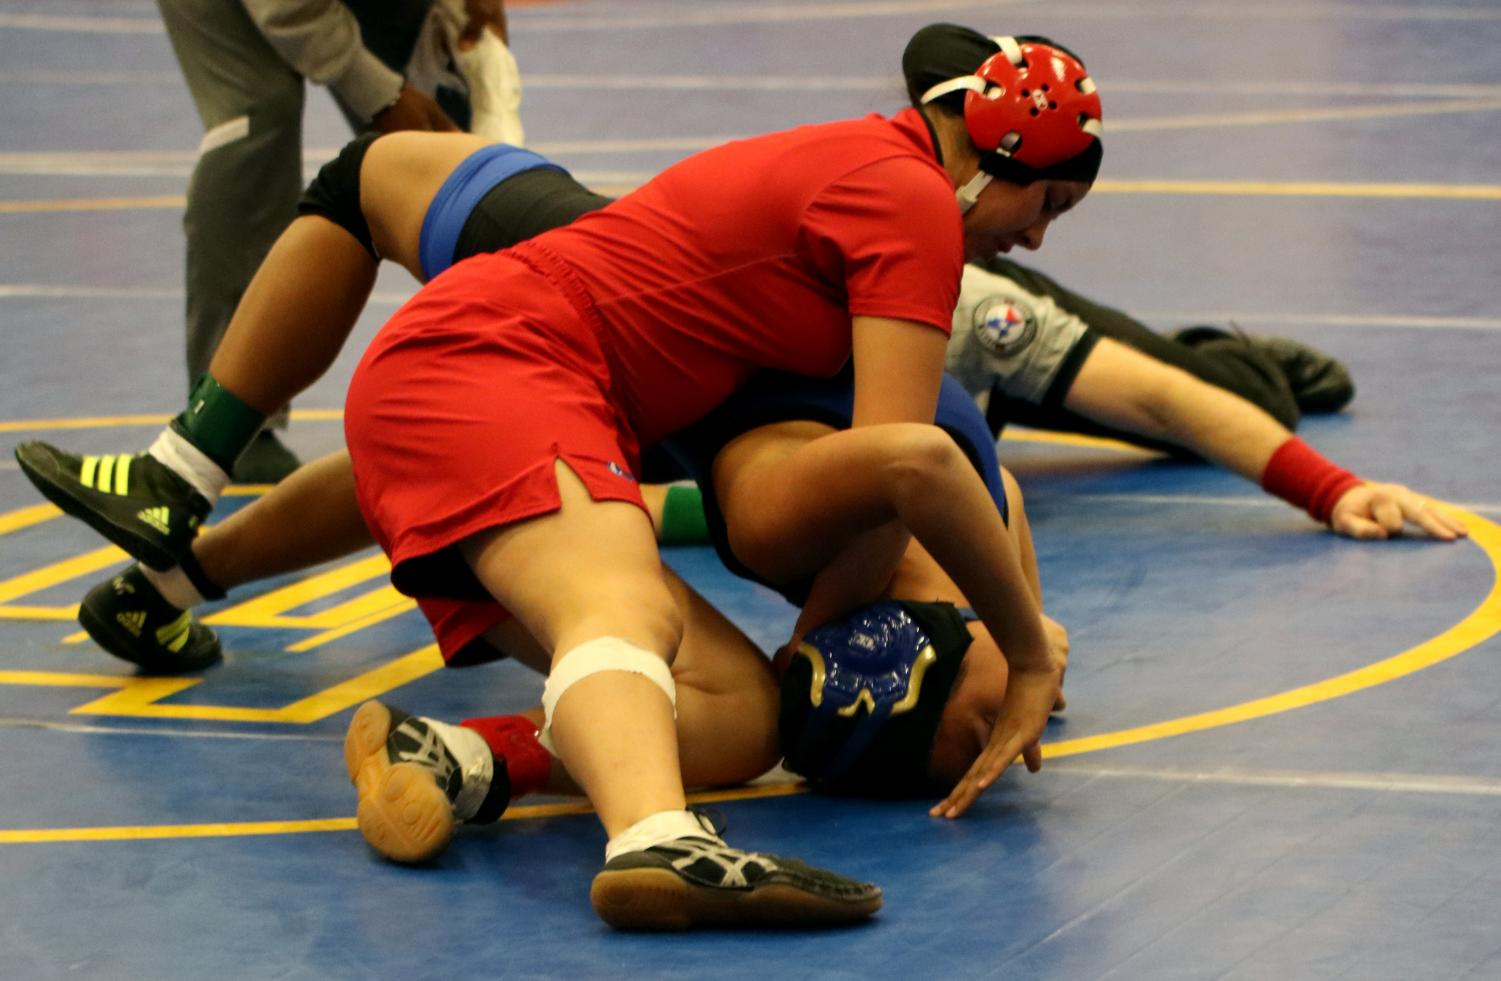 PINNED DOWN. Junior Linda Marroquin wrestles at the regional tournament Feb.15-16 at Pflugerville Weiss High School. Both Marroquin and senior Juan Martinez advanced to the state competition.